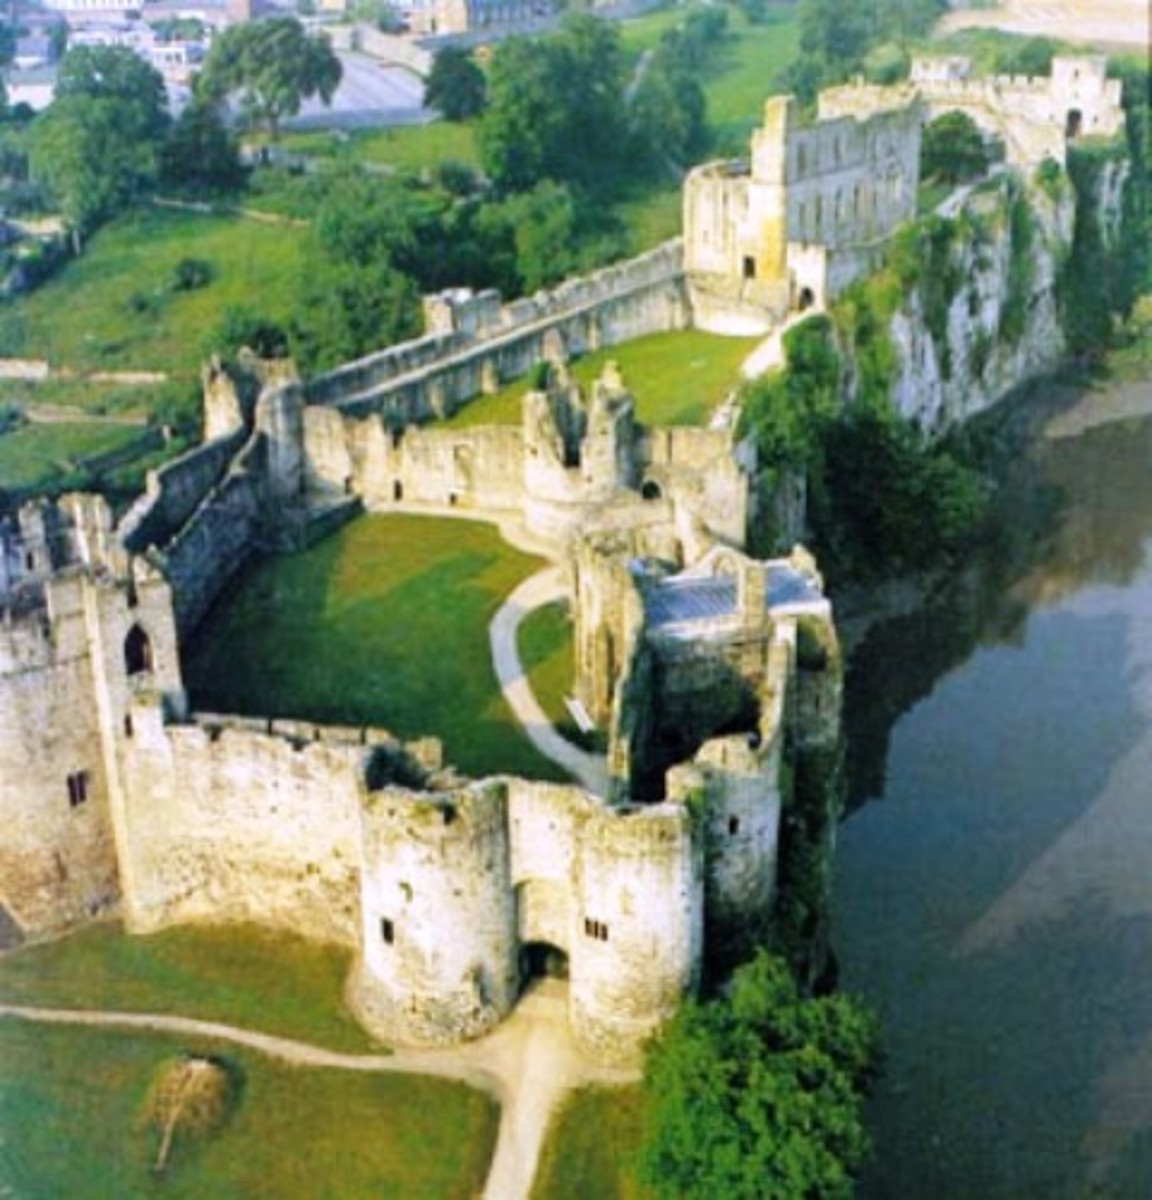 Chepstow Castle - Striguil - overlooks the River Severn before it enters the Severn Mouth near Bristol